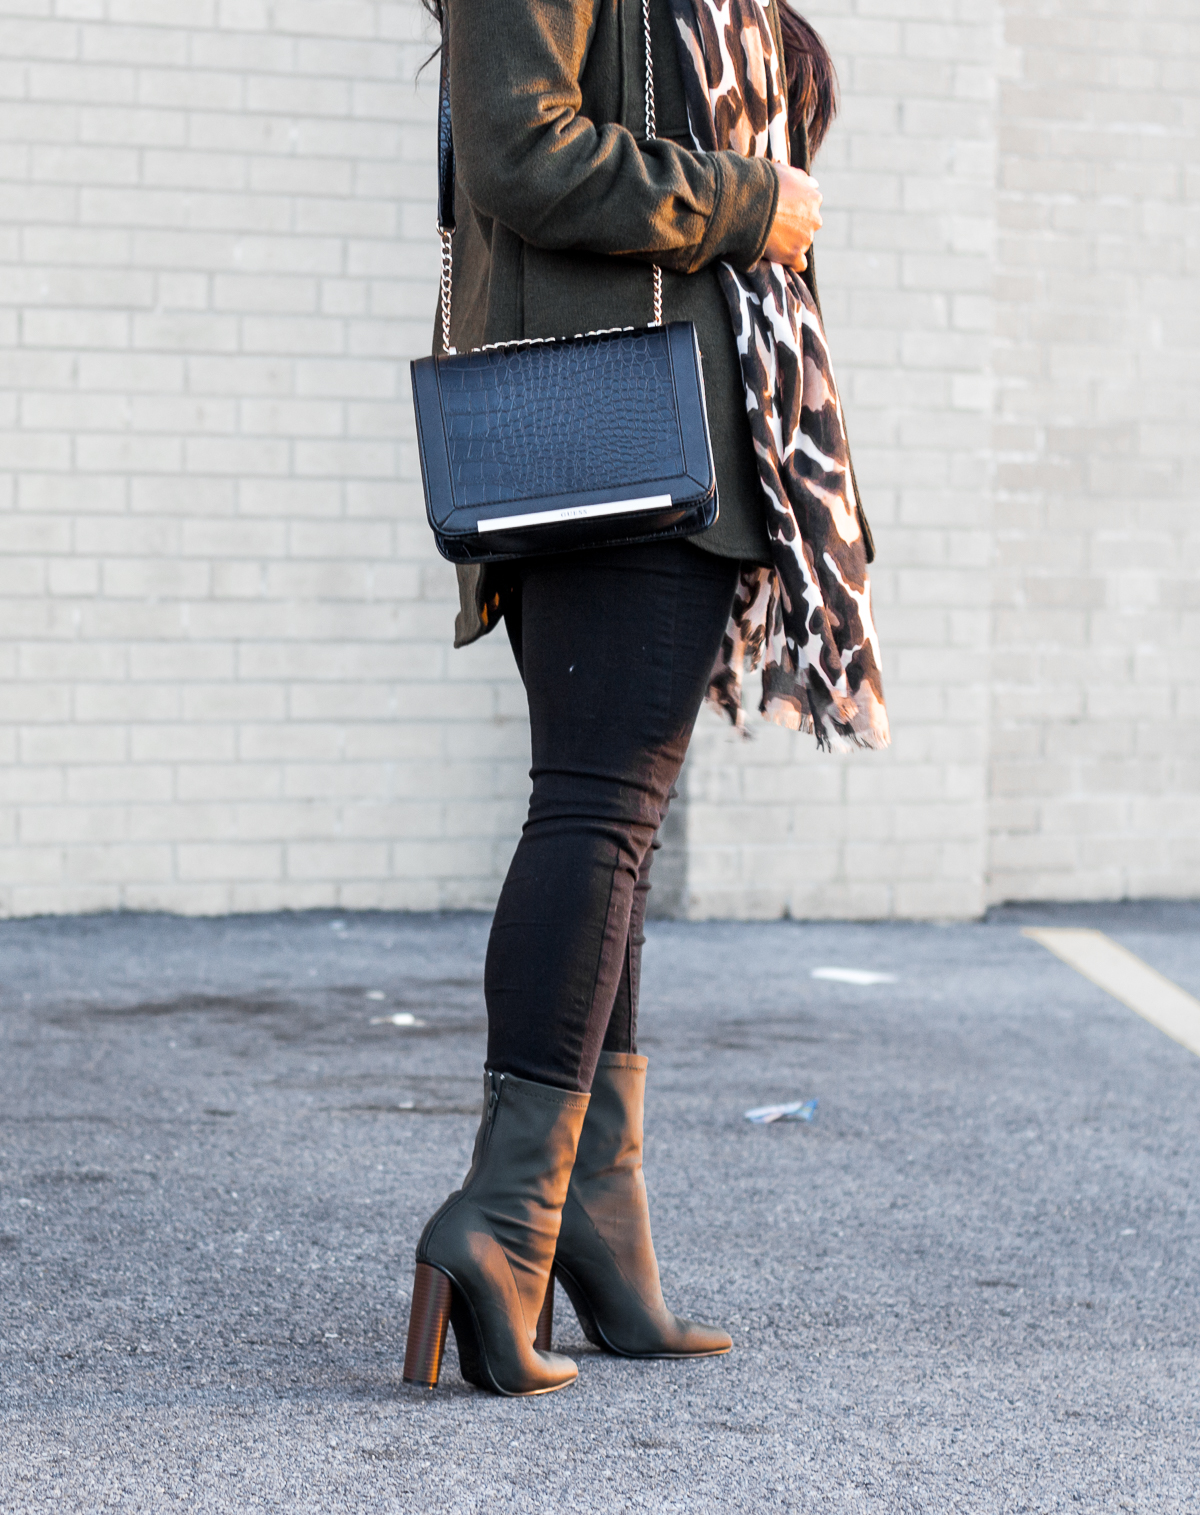 ankle-sock-boots-outfit